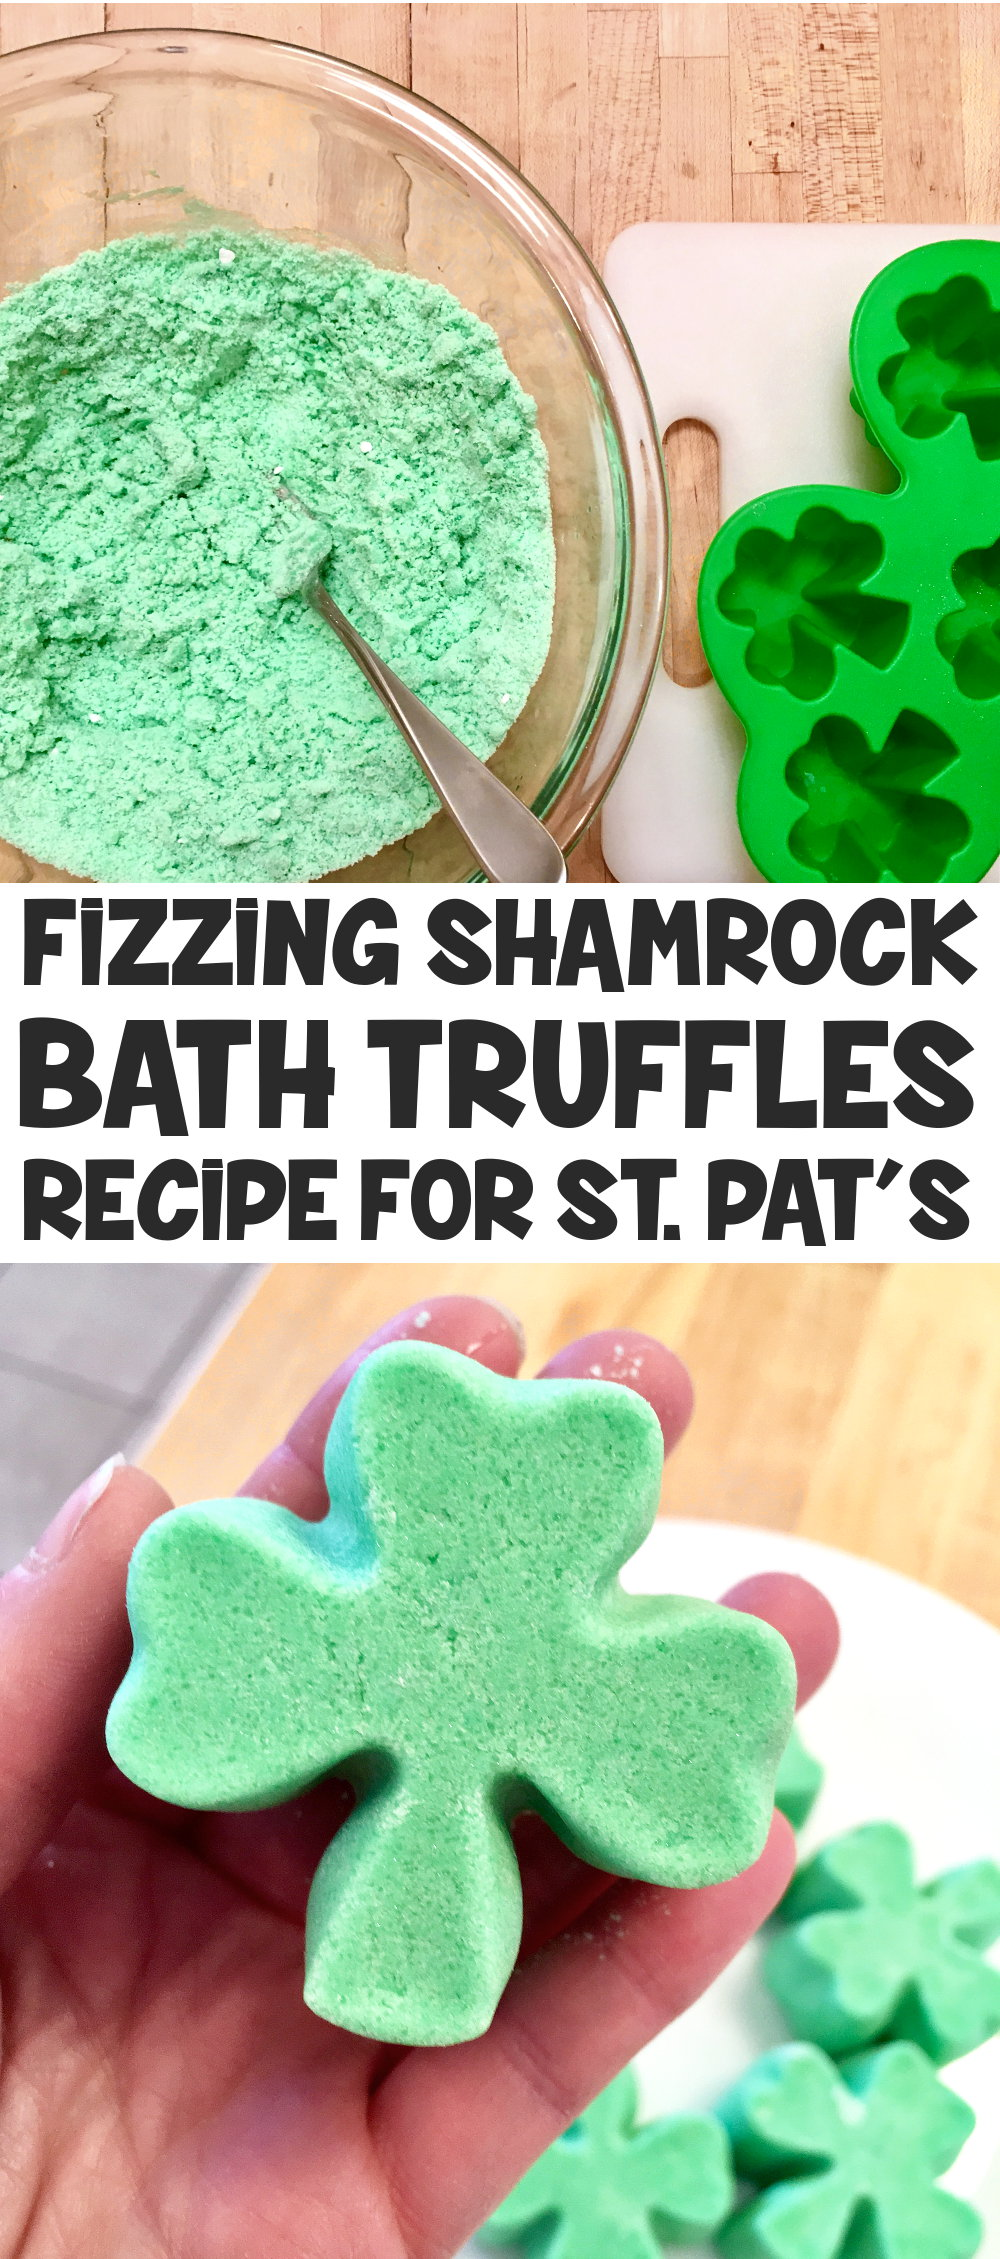 Learn how to make this fizzing shamrock bath truffles recipe for St. Patrick's Day! This easy fizzing shamrock bath truffles recipe creates a fizzy bath truffle that adds moisturizing cocoa butter to your bath water along with bubbles. Plus it's easy to remove from a silicone mold in one piece!